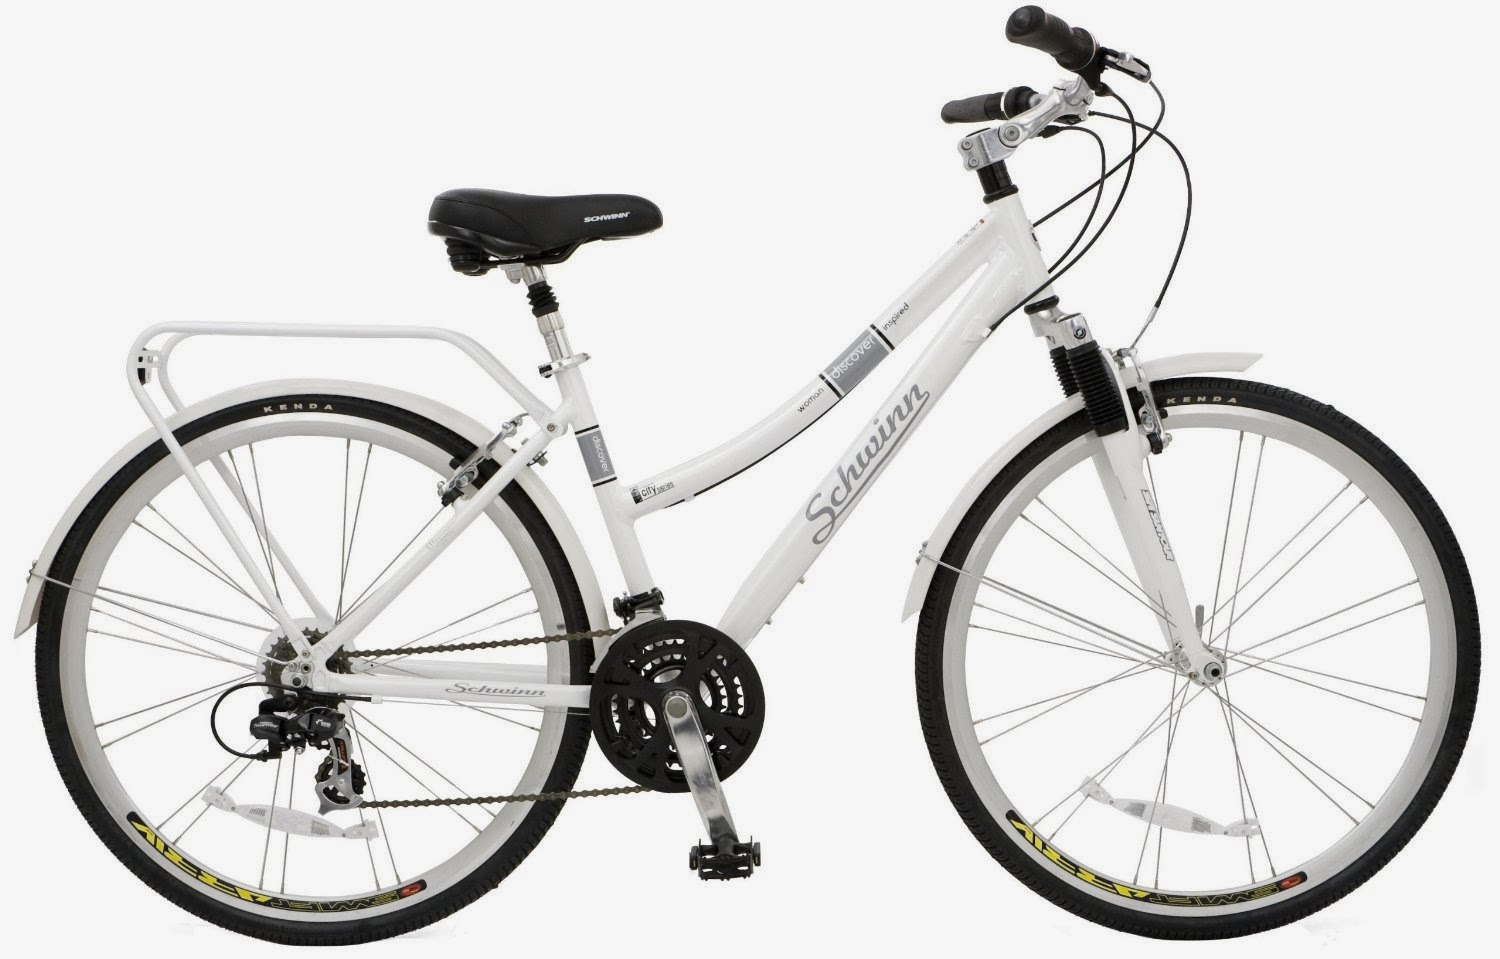 Schwinn Discover Women's Hybrid Bike, 700c wheels, picture, review features & specifications